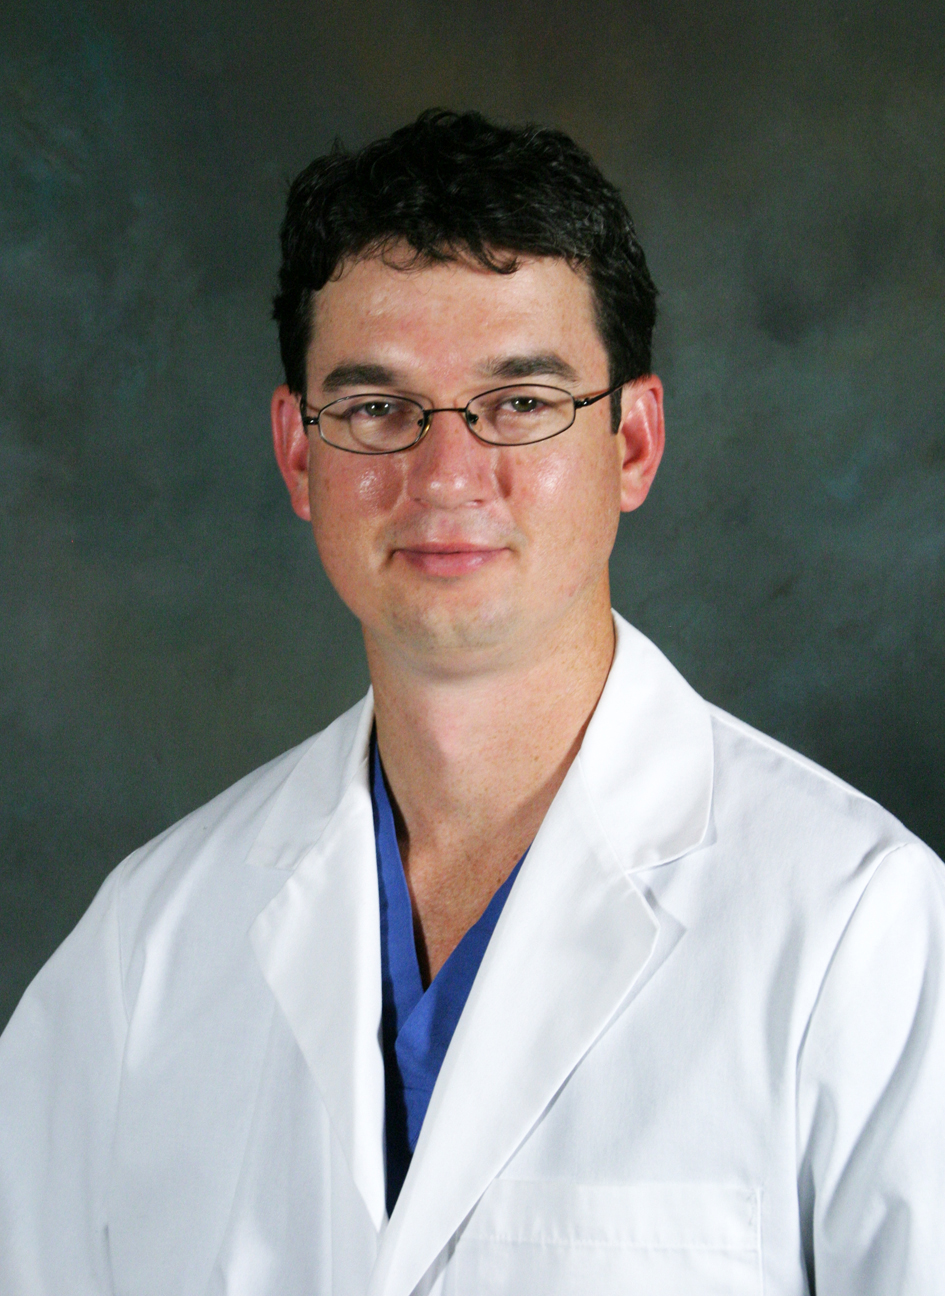 John Rainey, MD